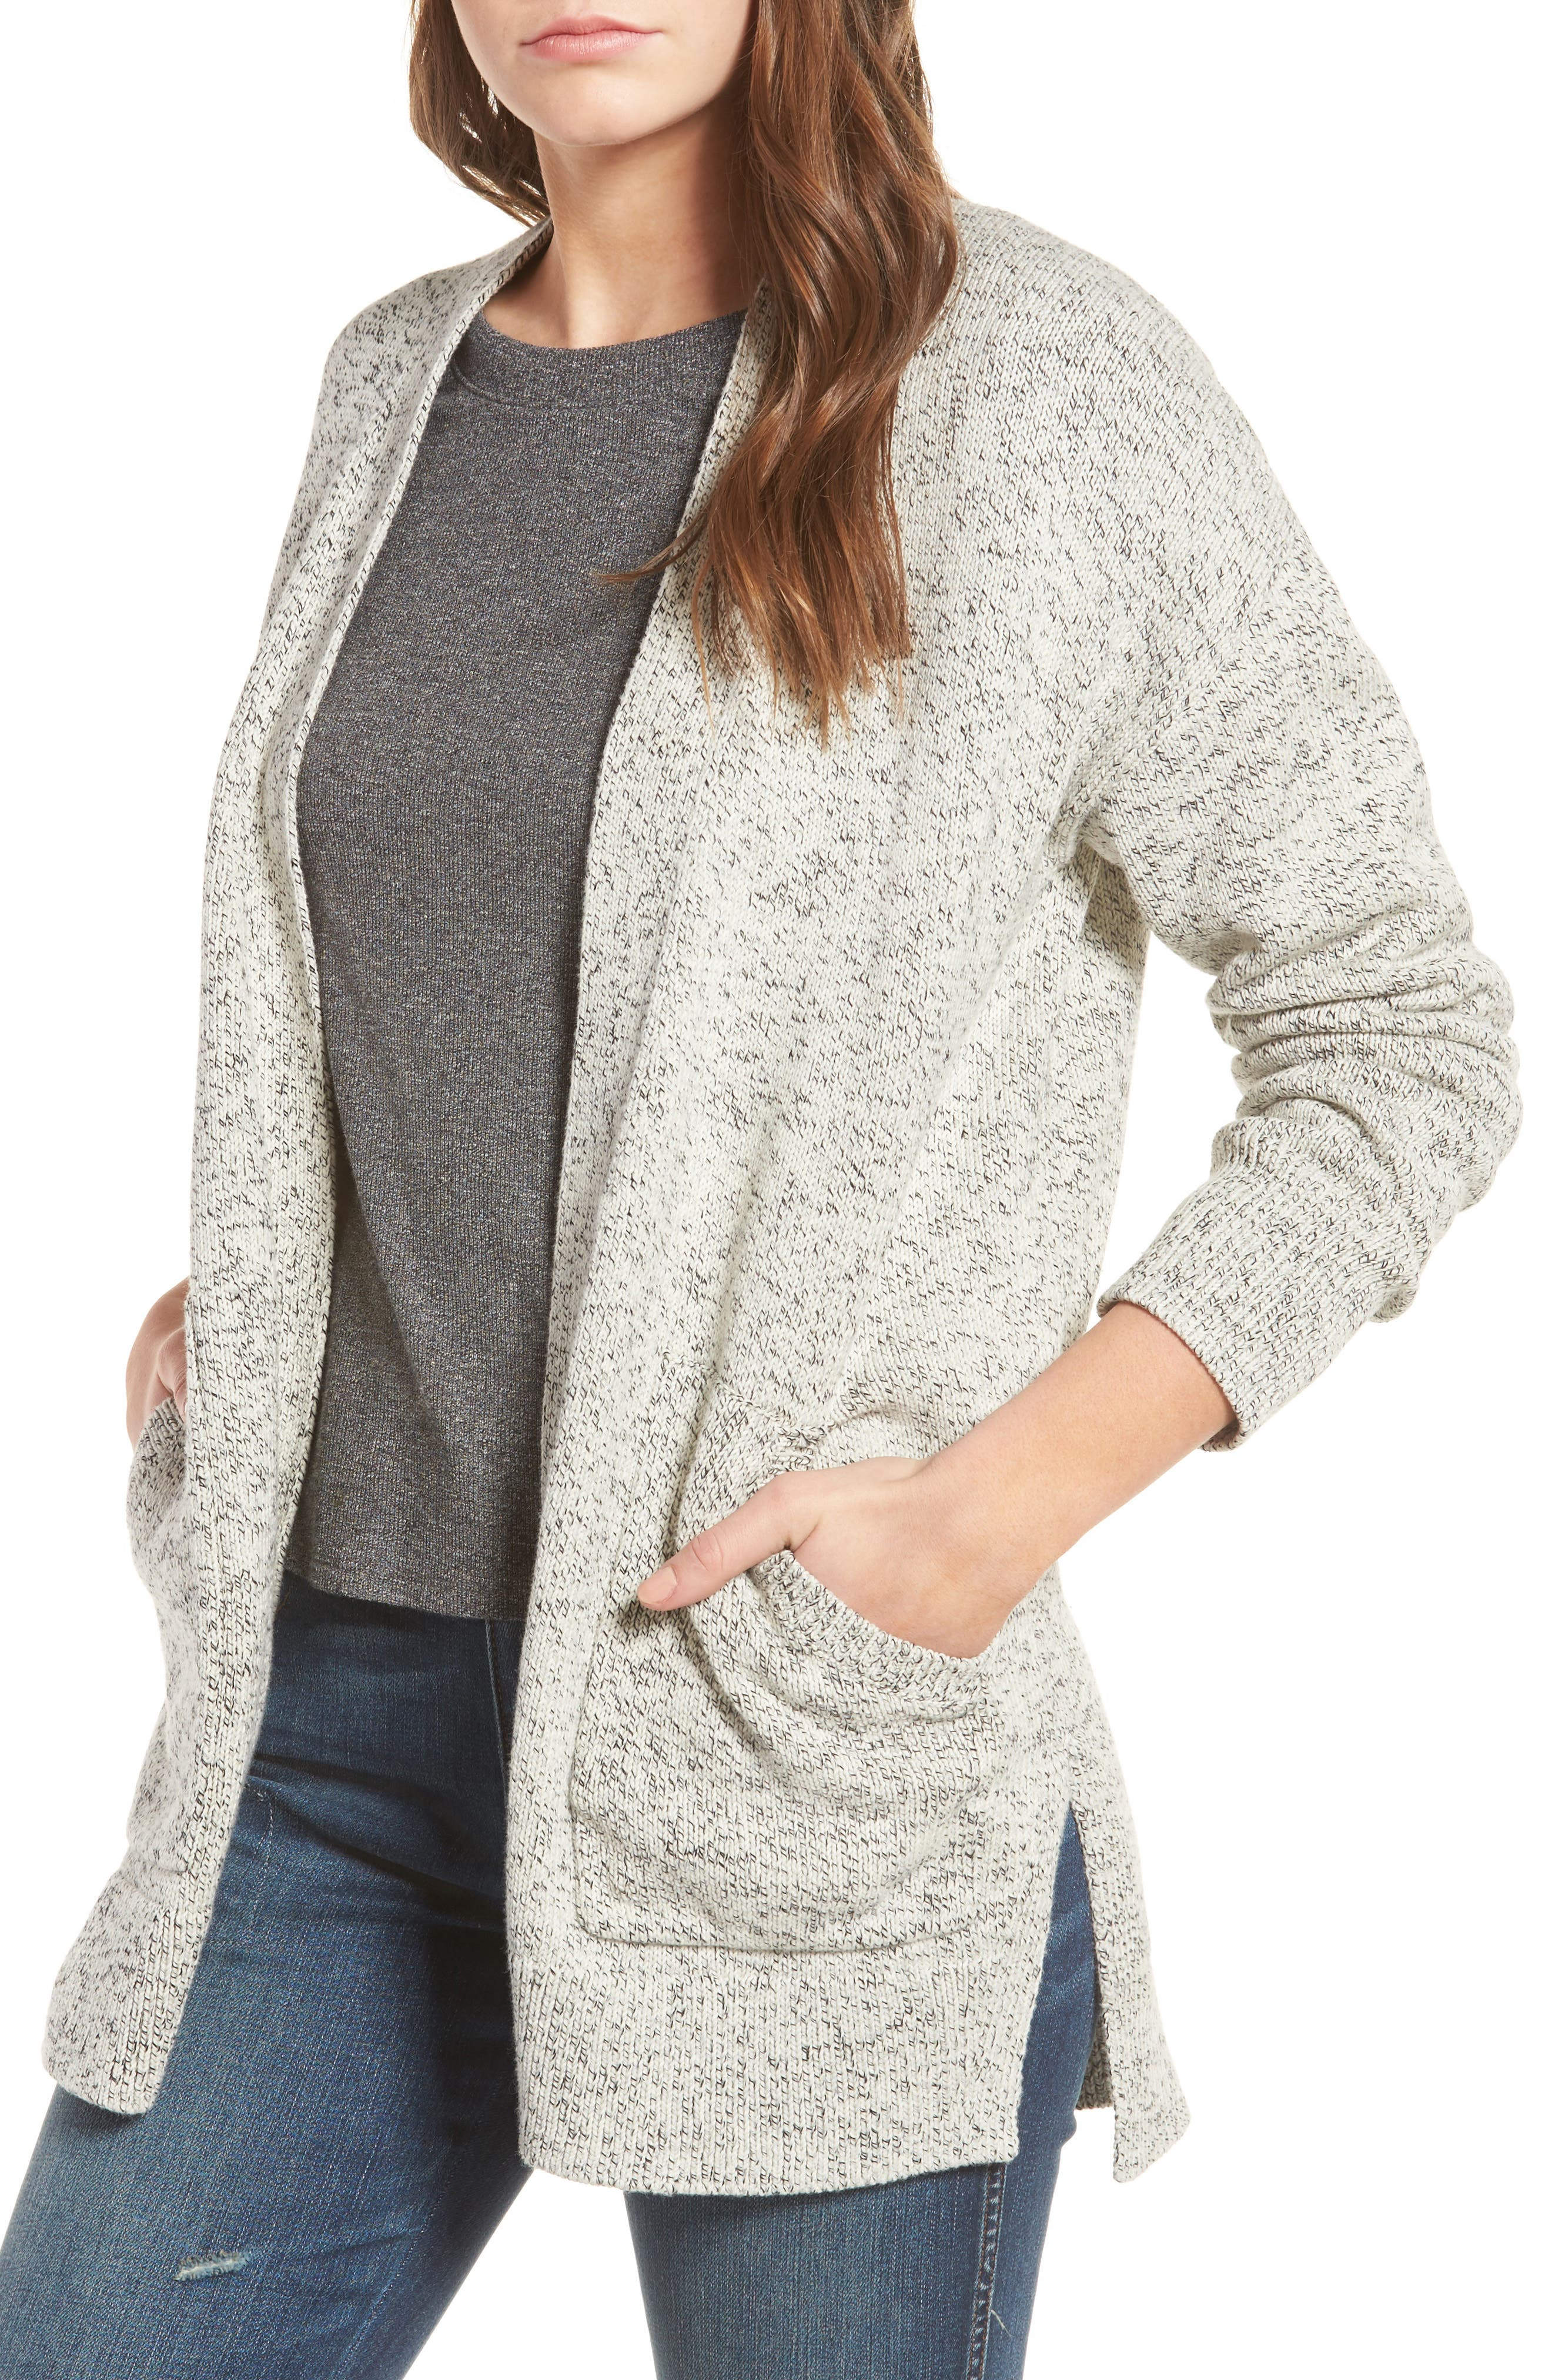 Alternate Image 1 Selected - Madewell Midland Cardigan